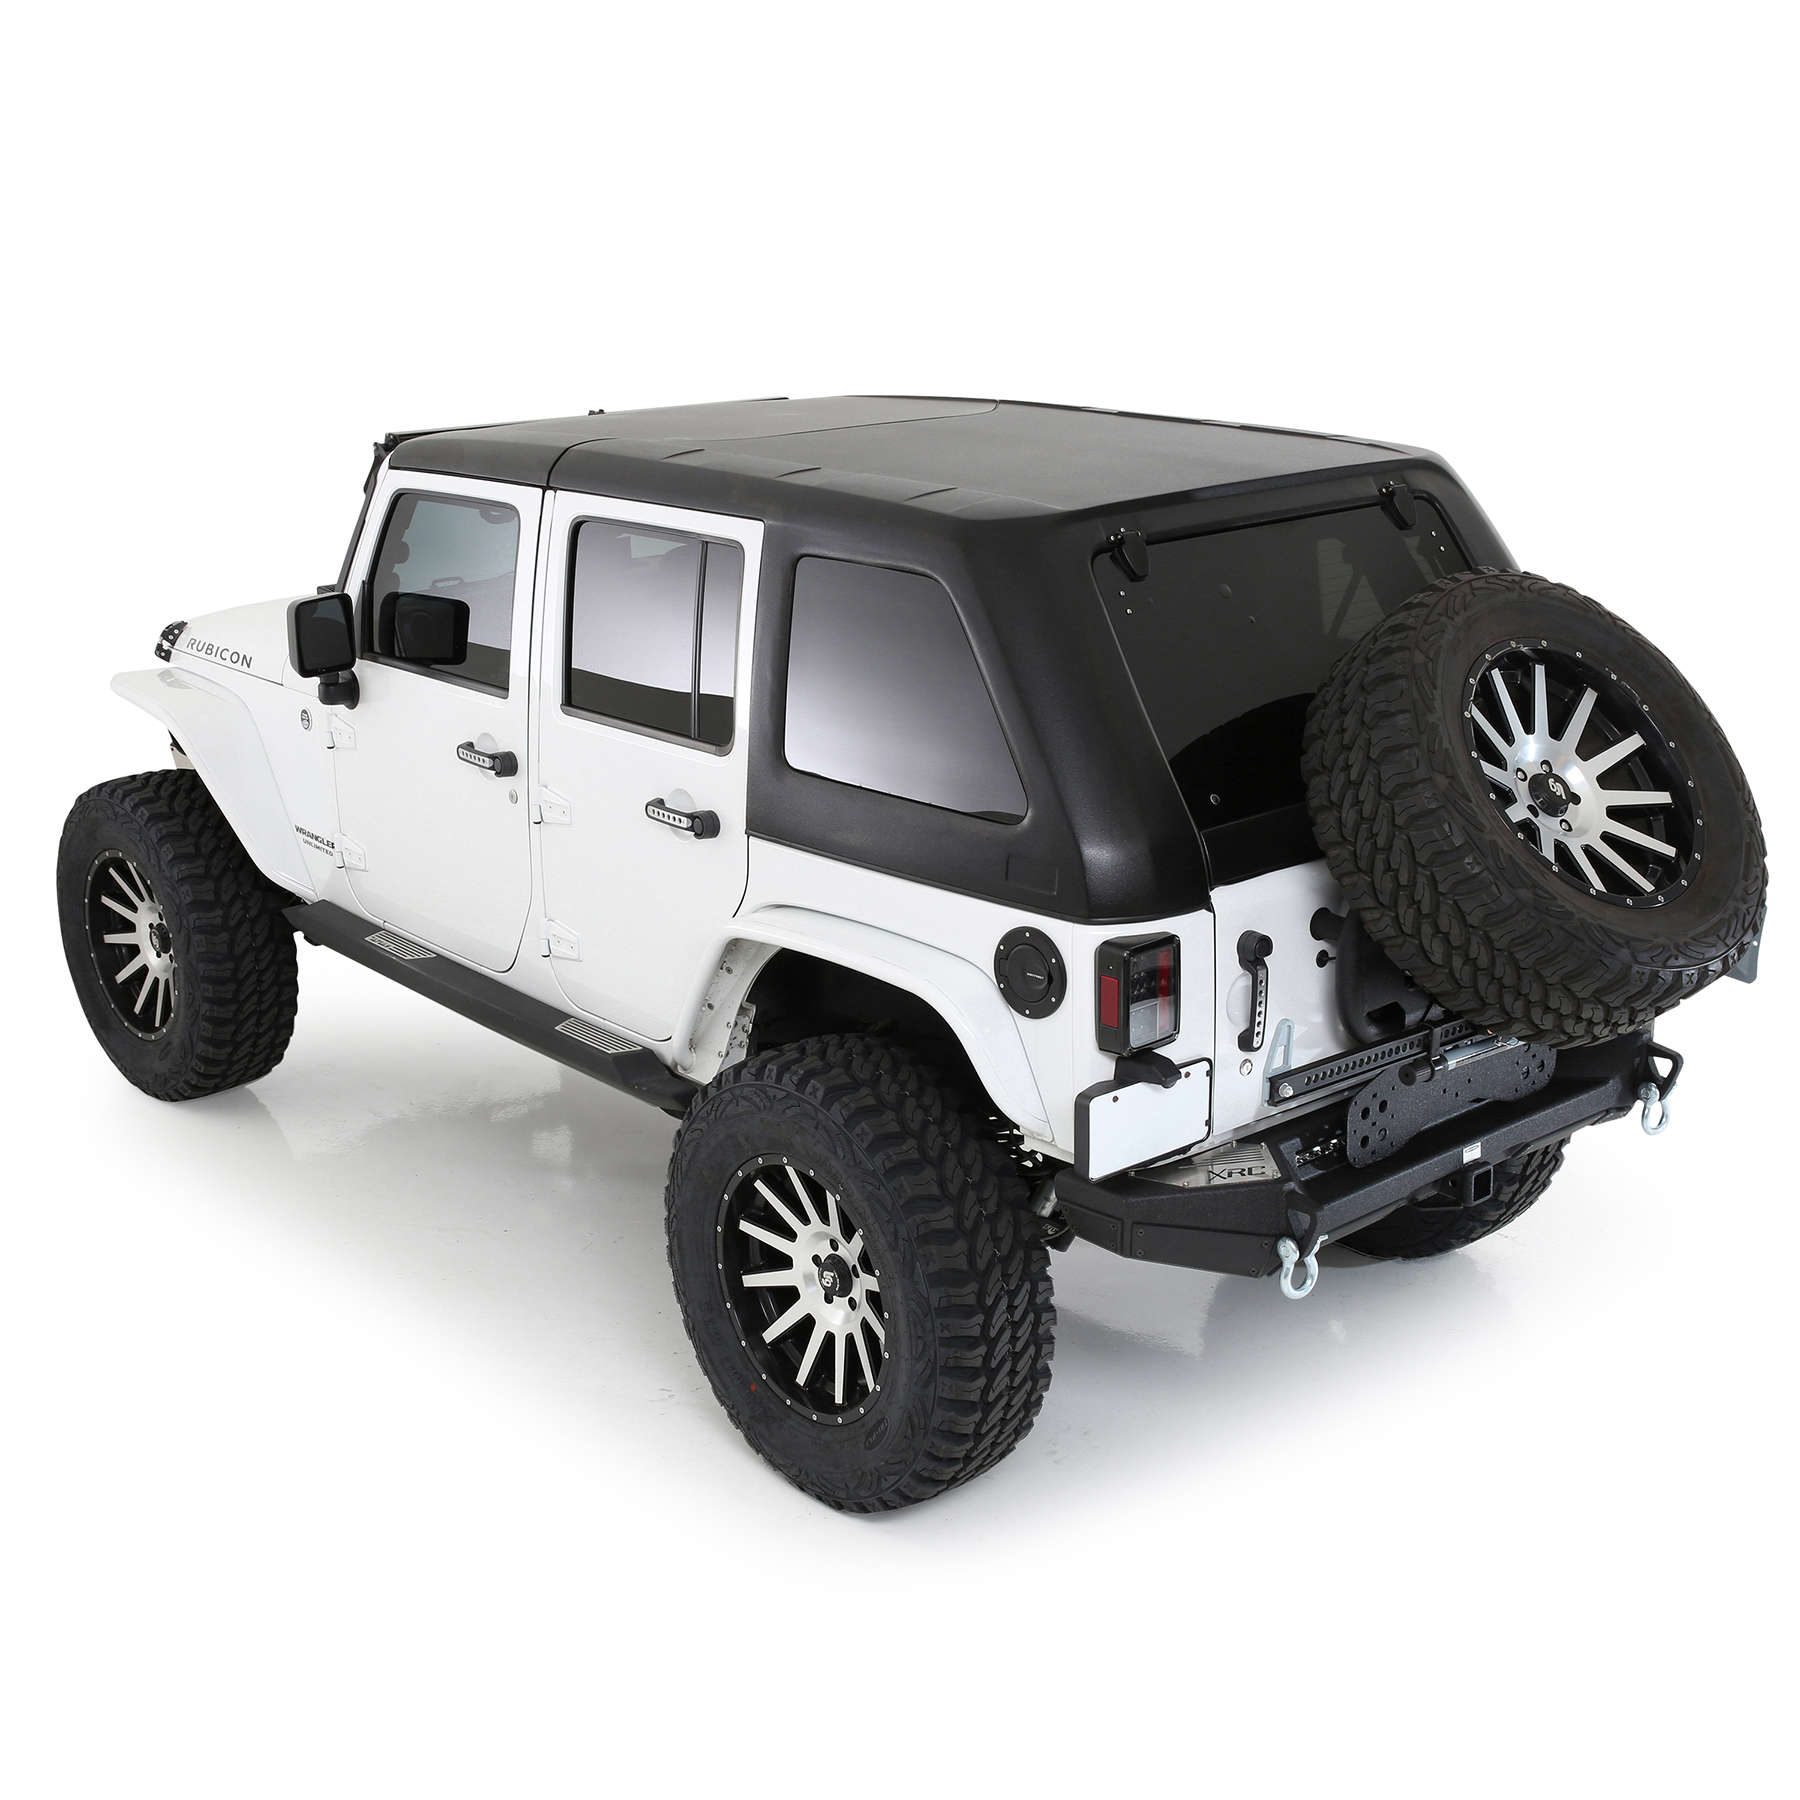 Smittybilt 518703 Slant Hard Top